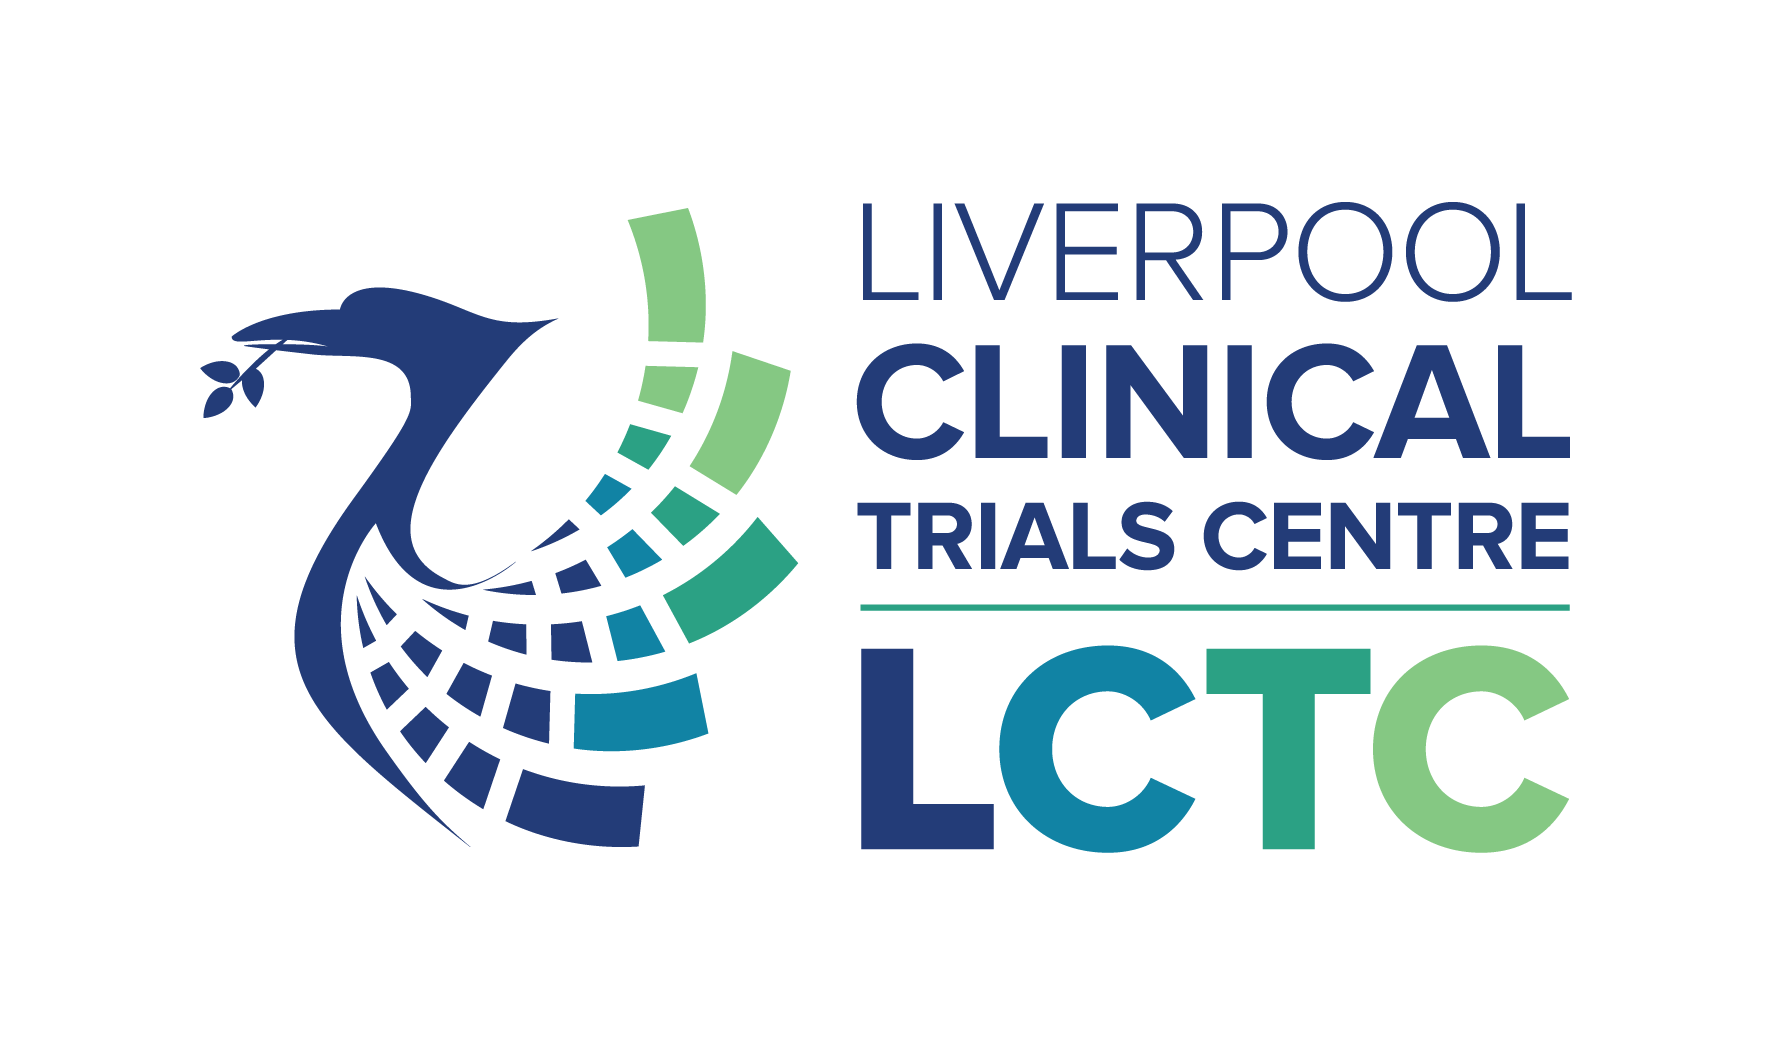 The LCTC logo in colour